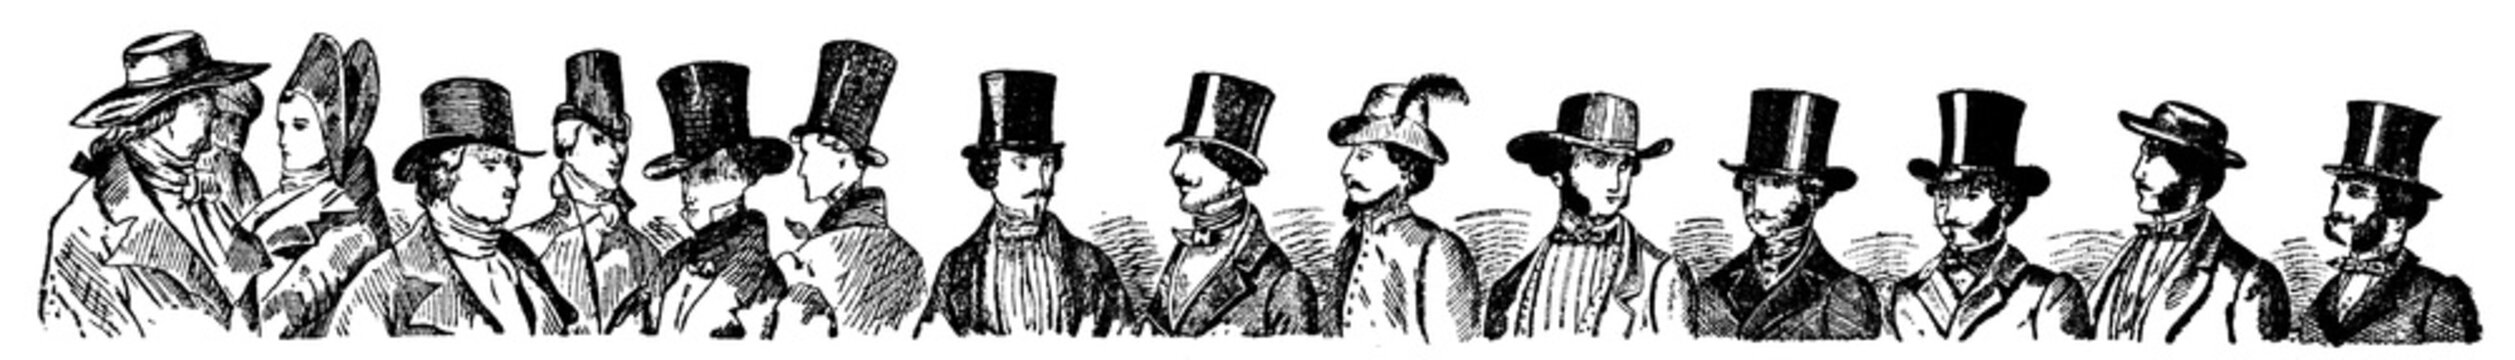 Fashionable men in hats, chapter separator in a book. Illustration of the 19th century. White background.